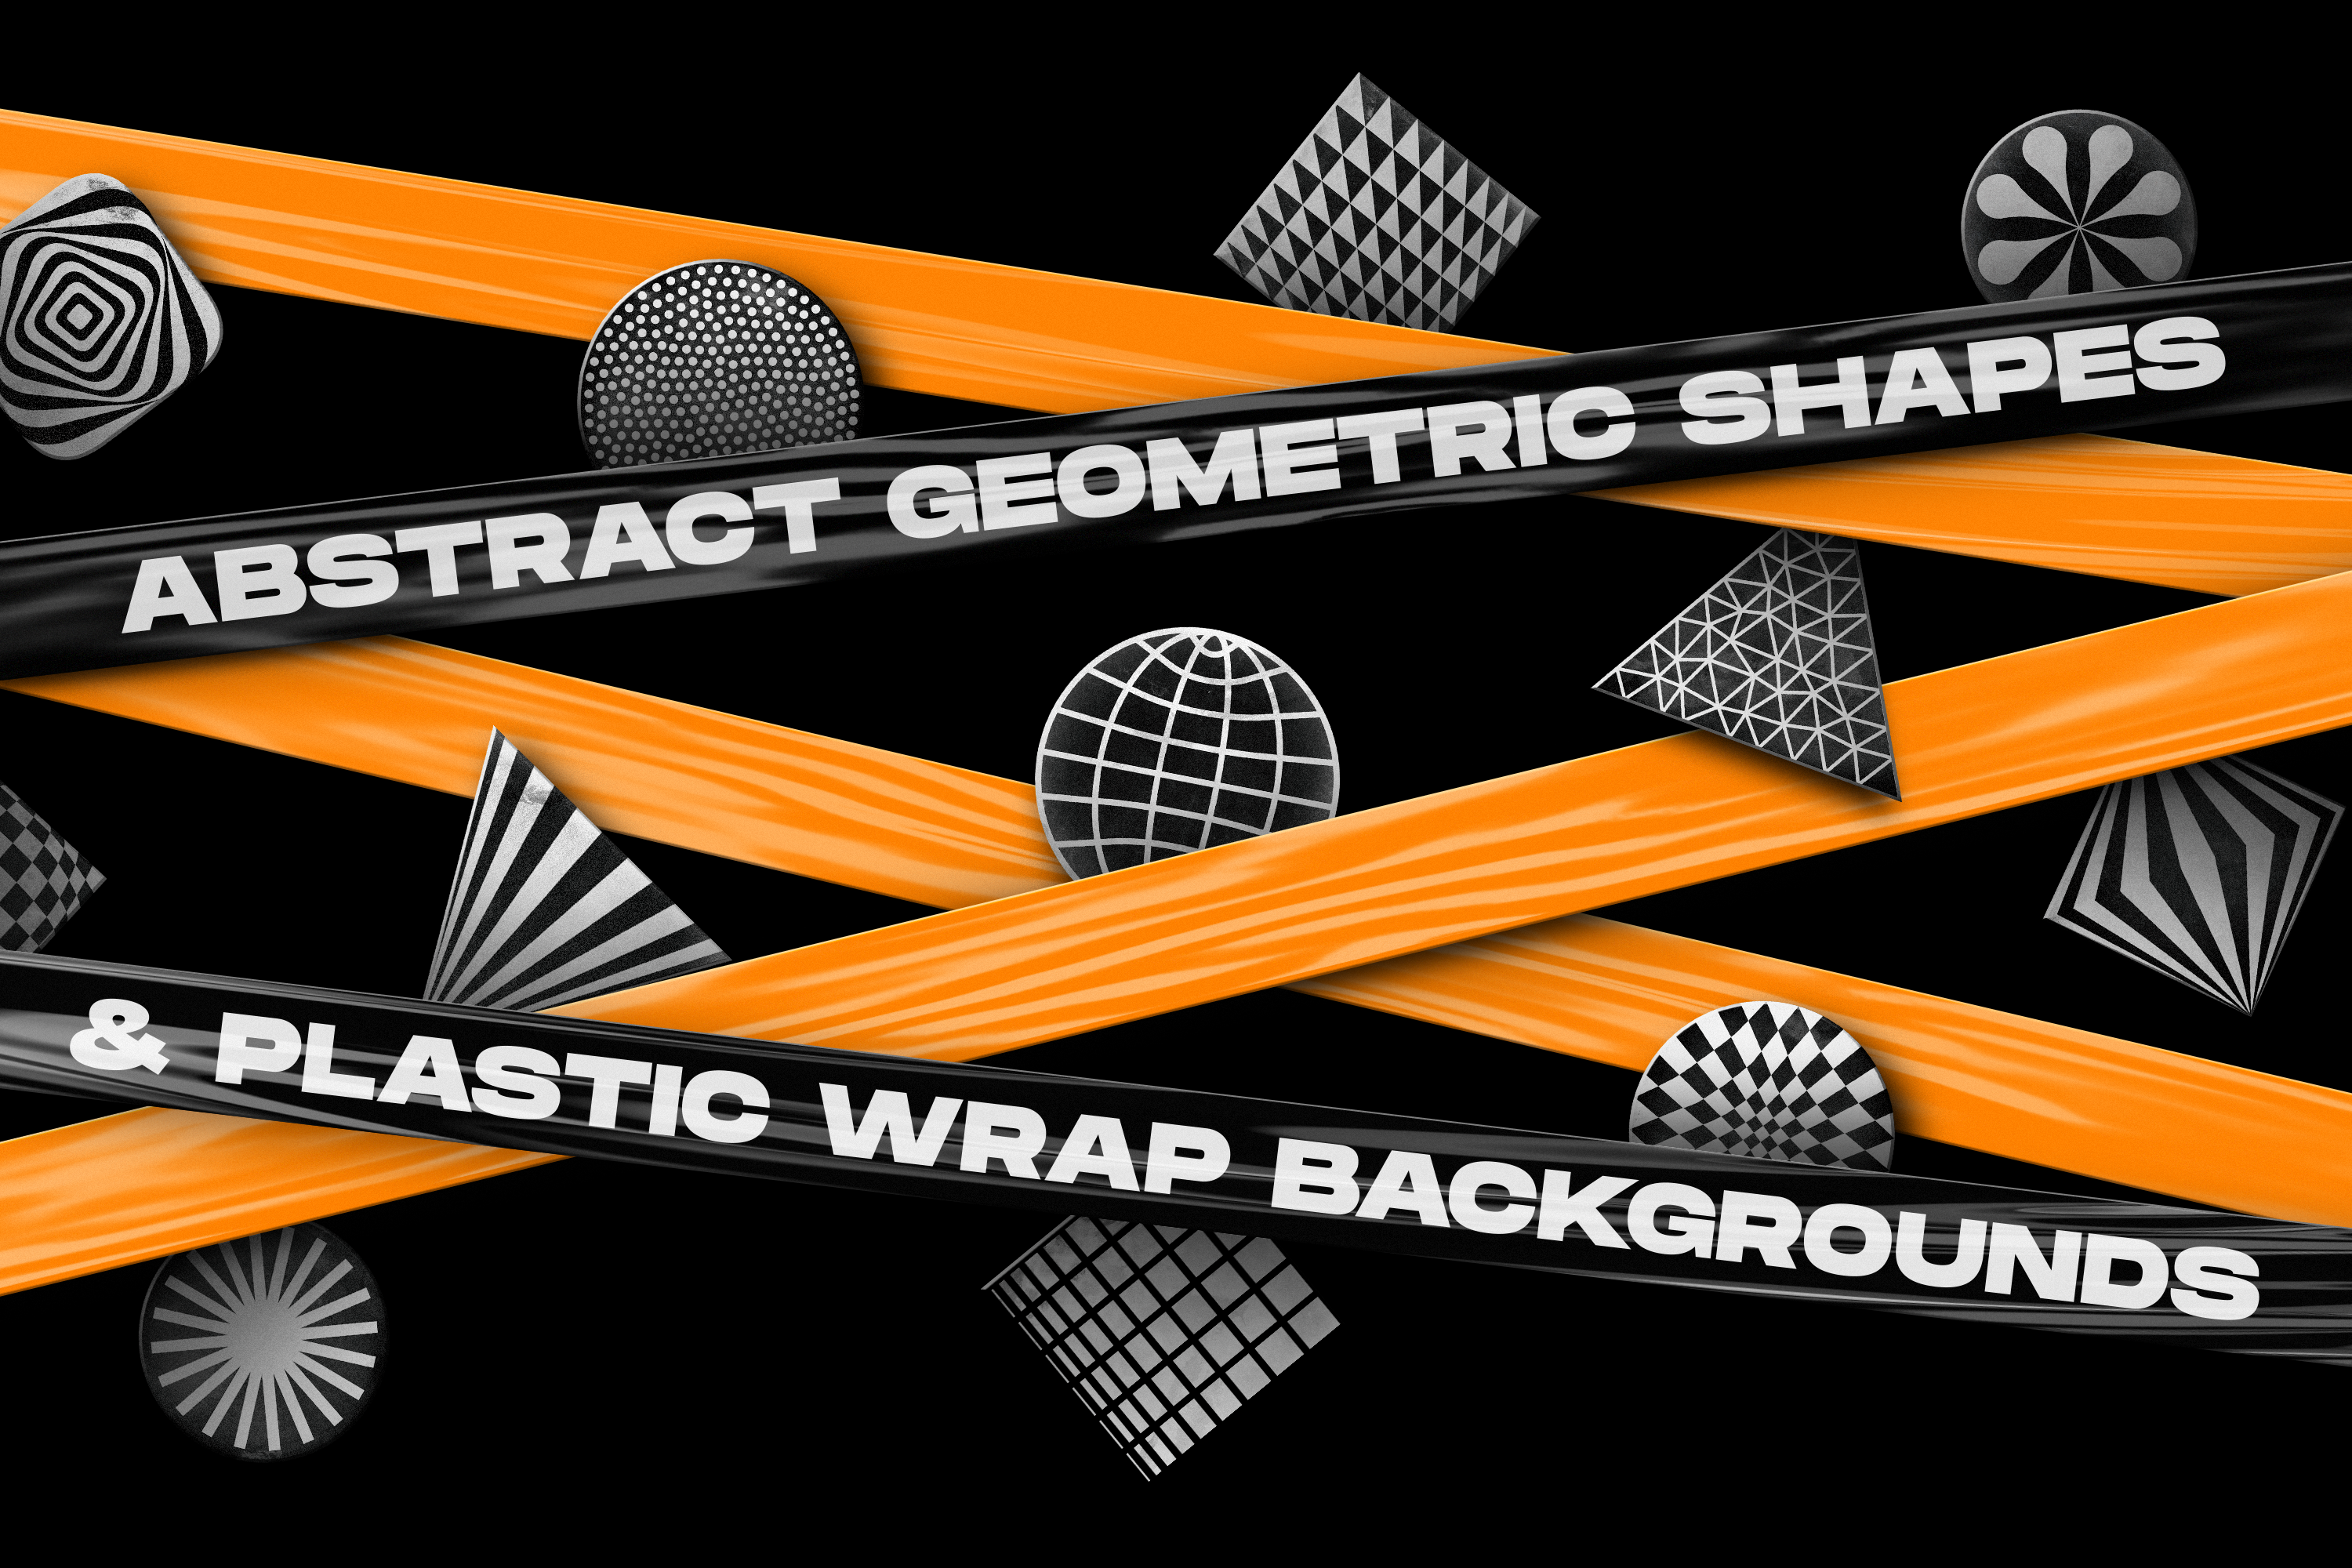 200 Abstract geometric shapes & Plastic wrap backgrounds example image 1